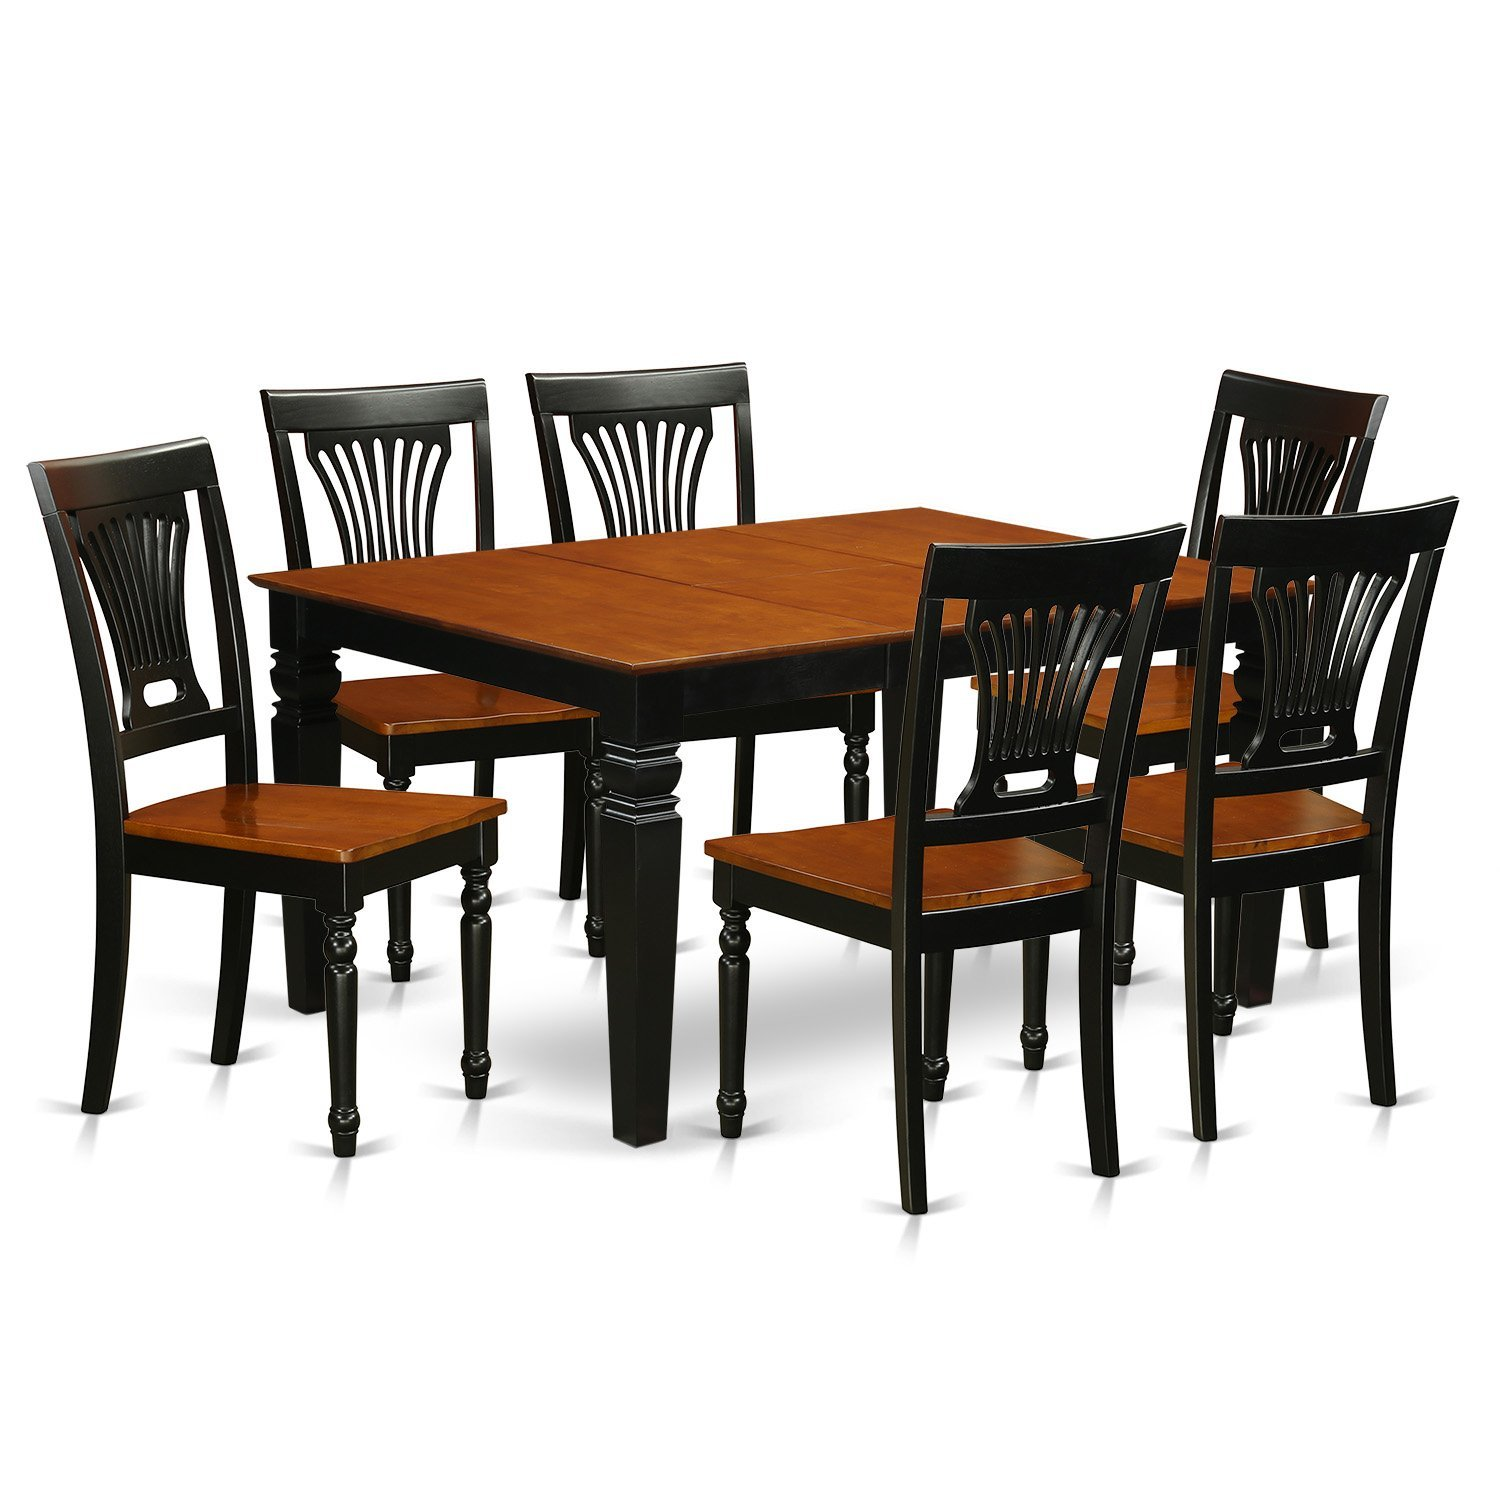 East West Furniture Weston WEPL7-BCH-W 7 Pc Room Set with a Dining Table and 6 Wood Kitchen Chairs, Black